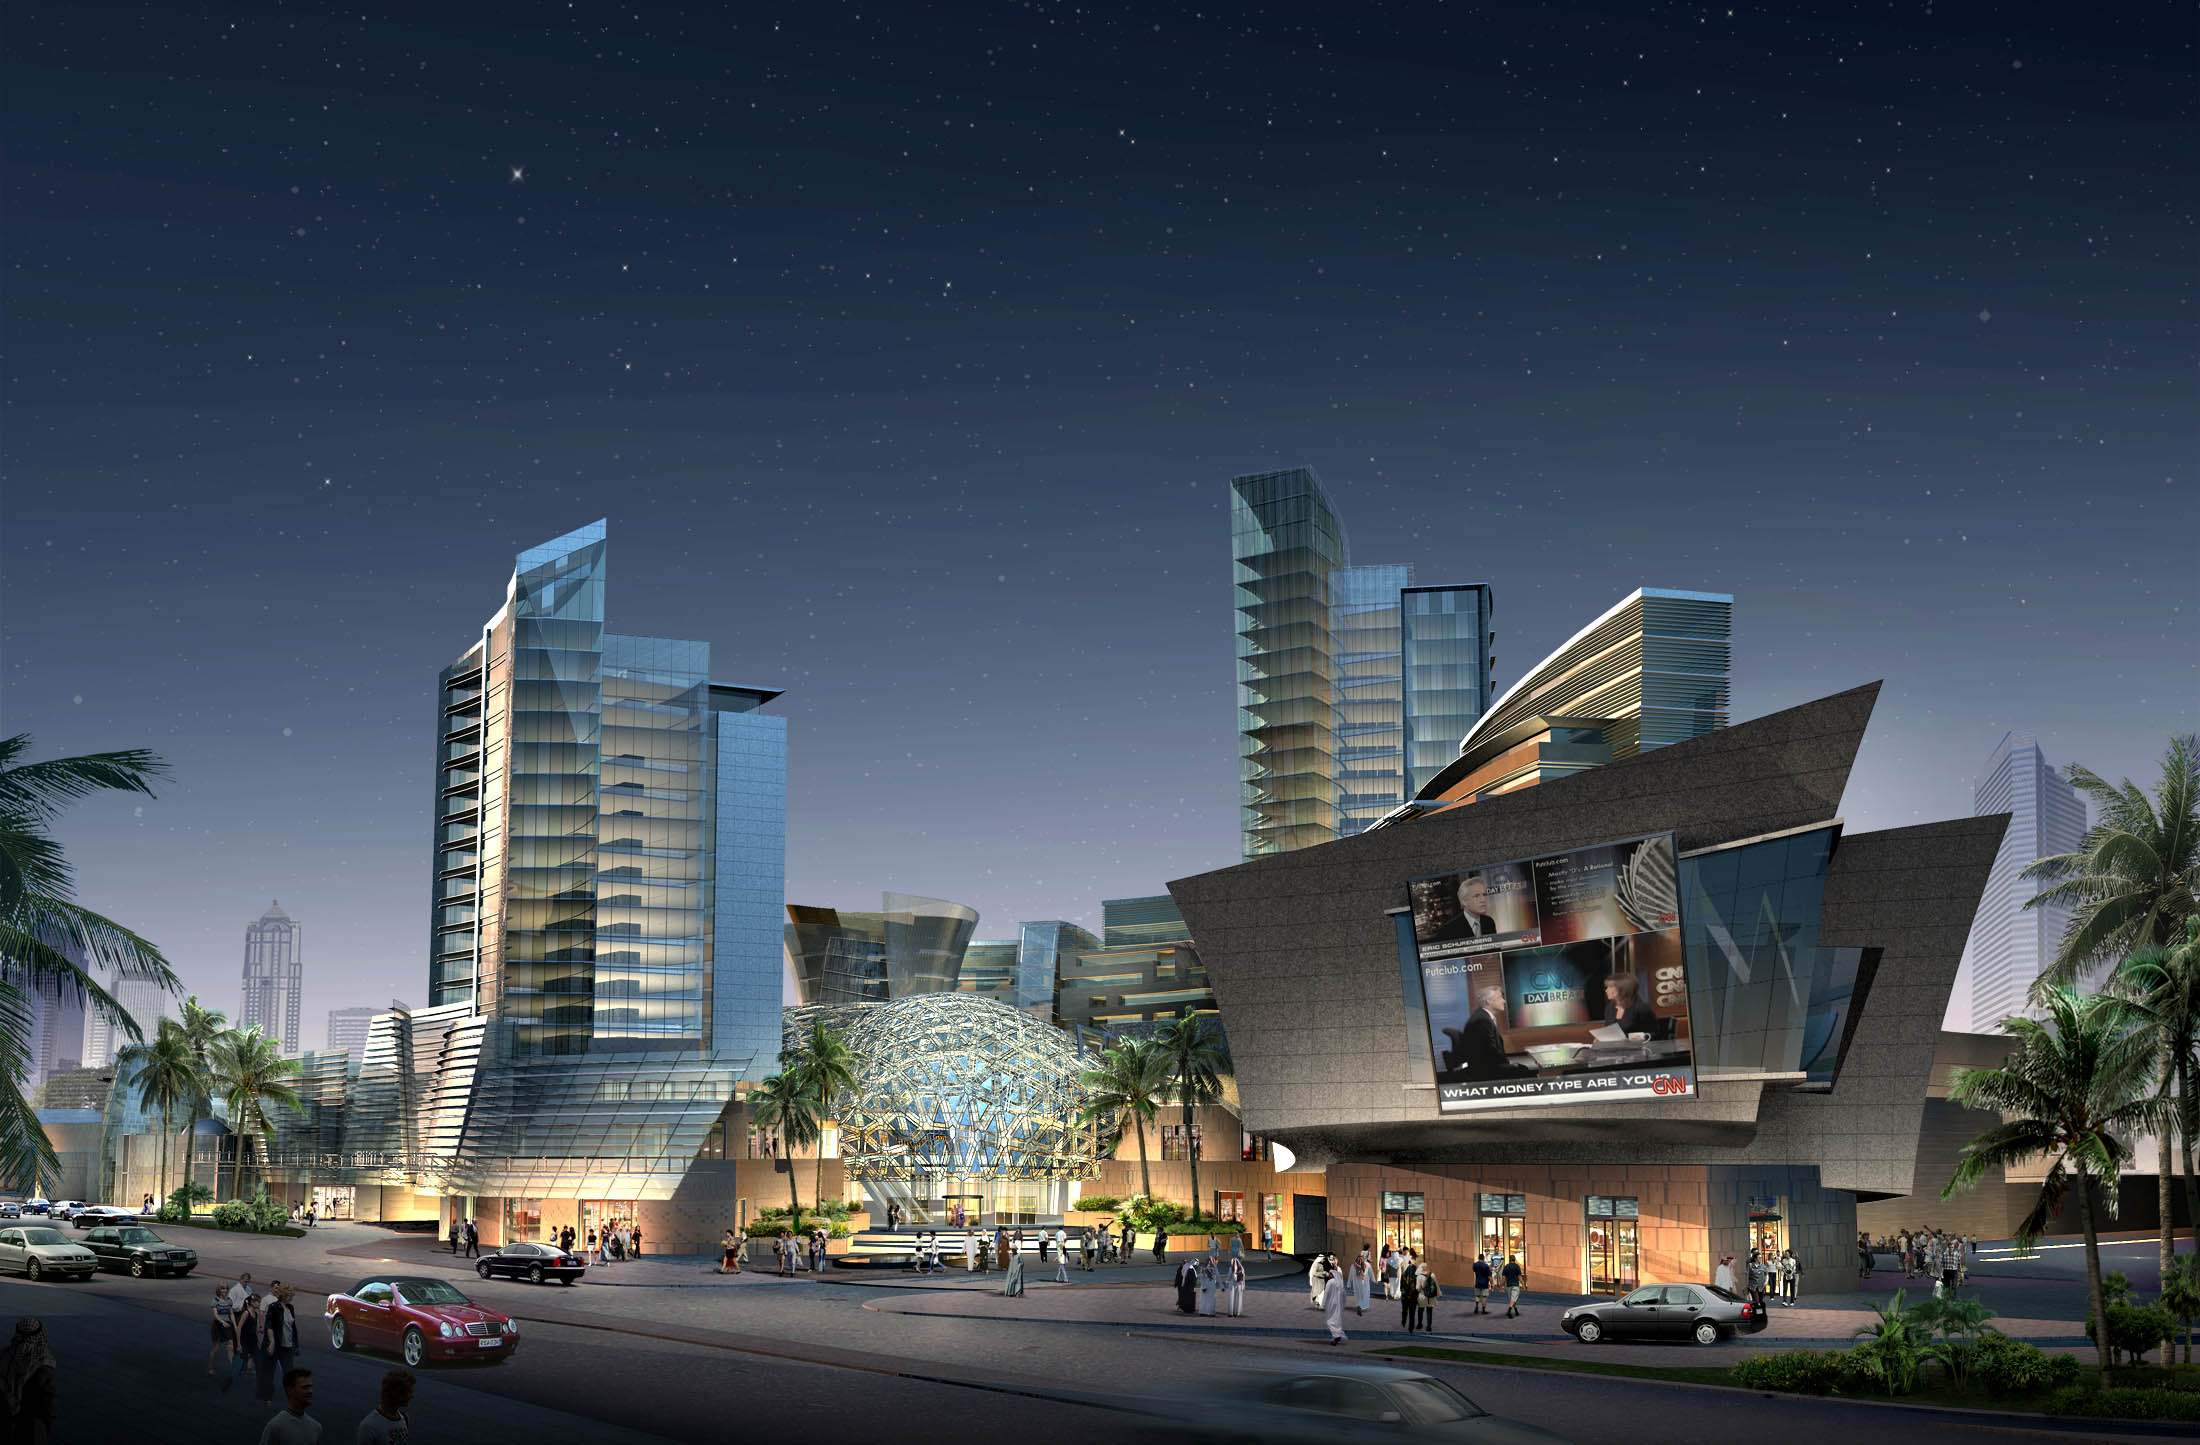 Commercial Vehicle Definition >> 3D Shopping Mall night | CGTrader